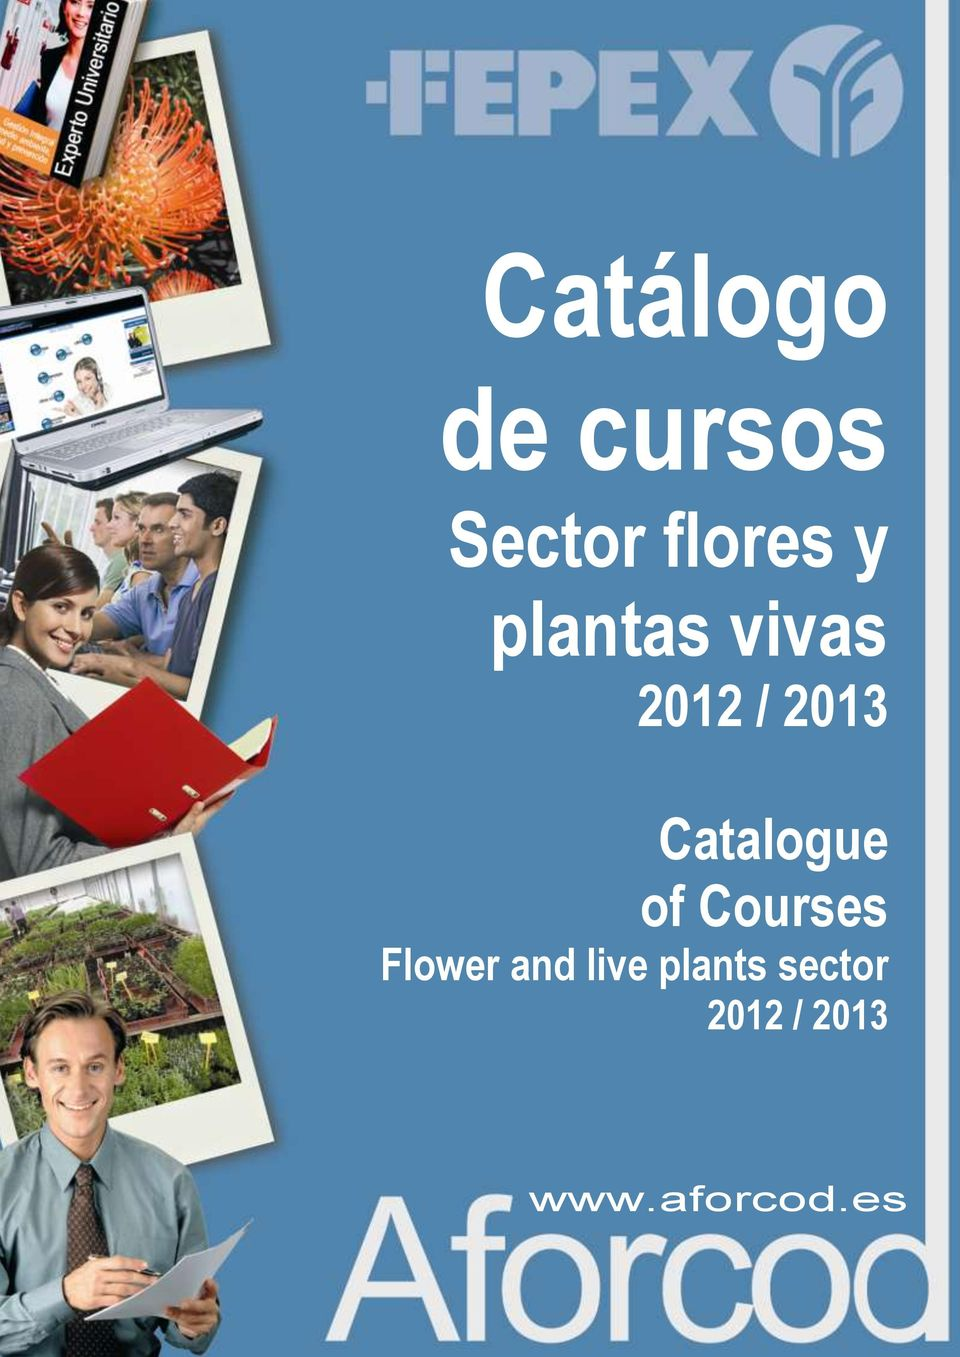 Catalogue of Courses Flower and